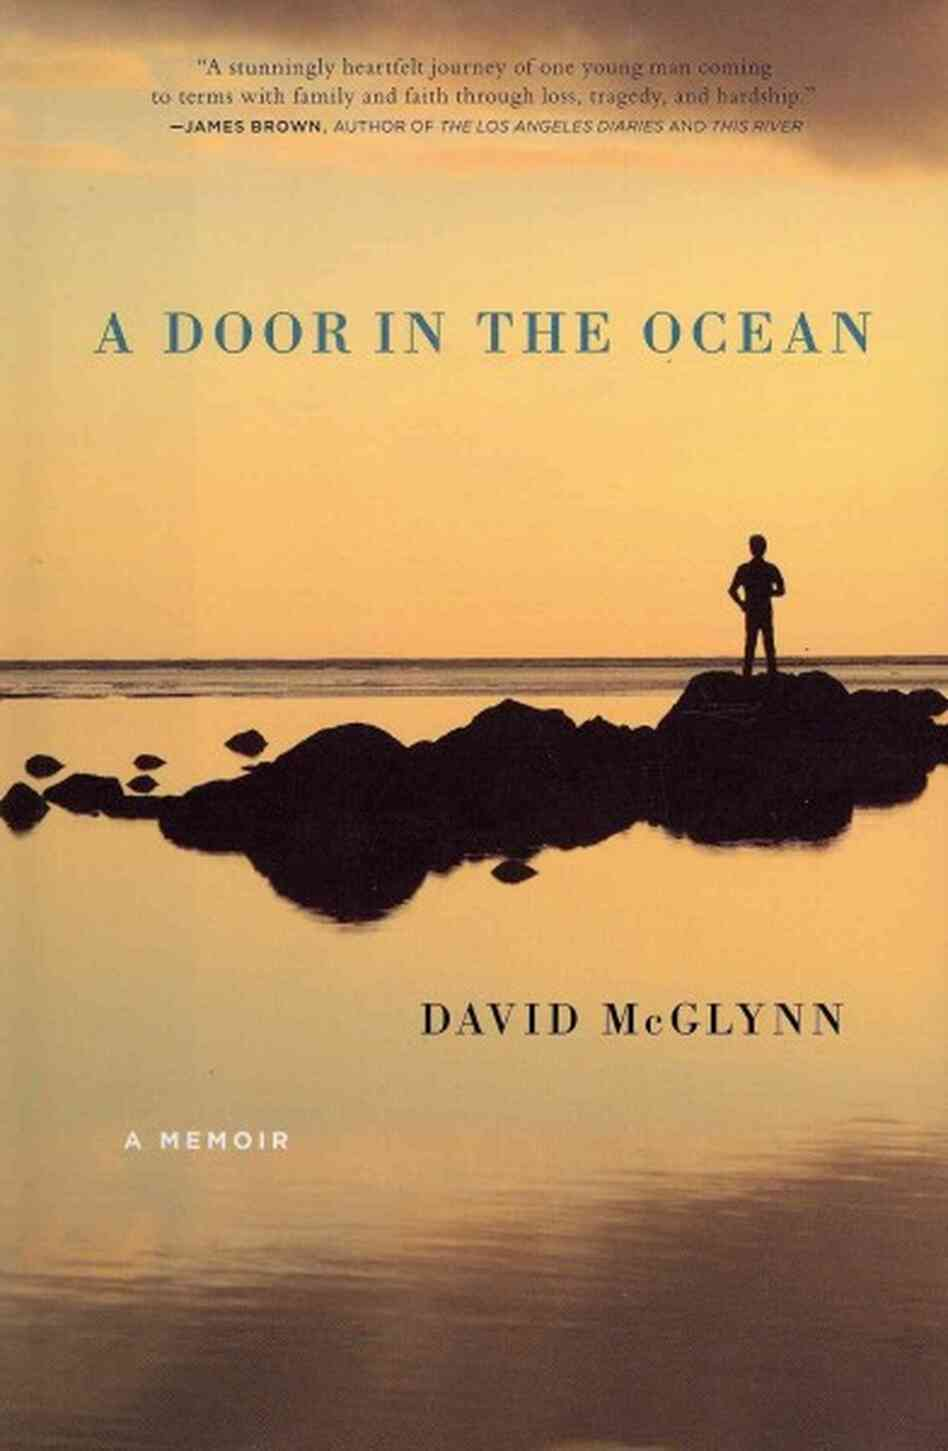 A Door in the Ocean